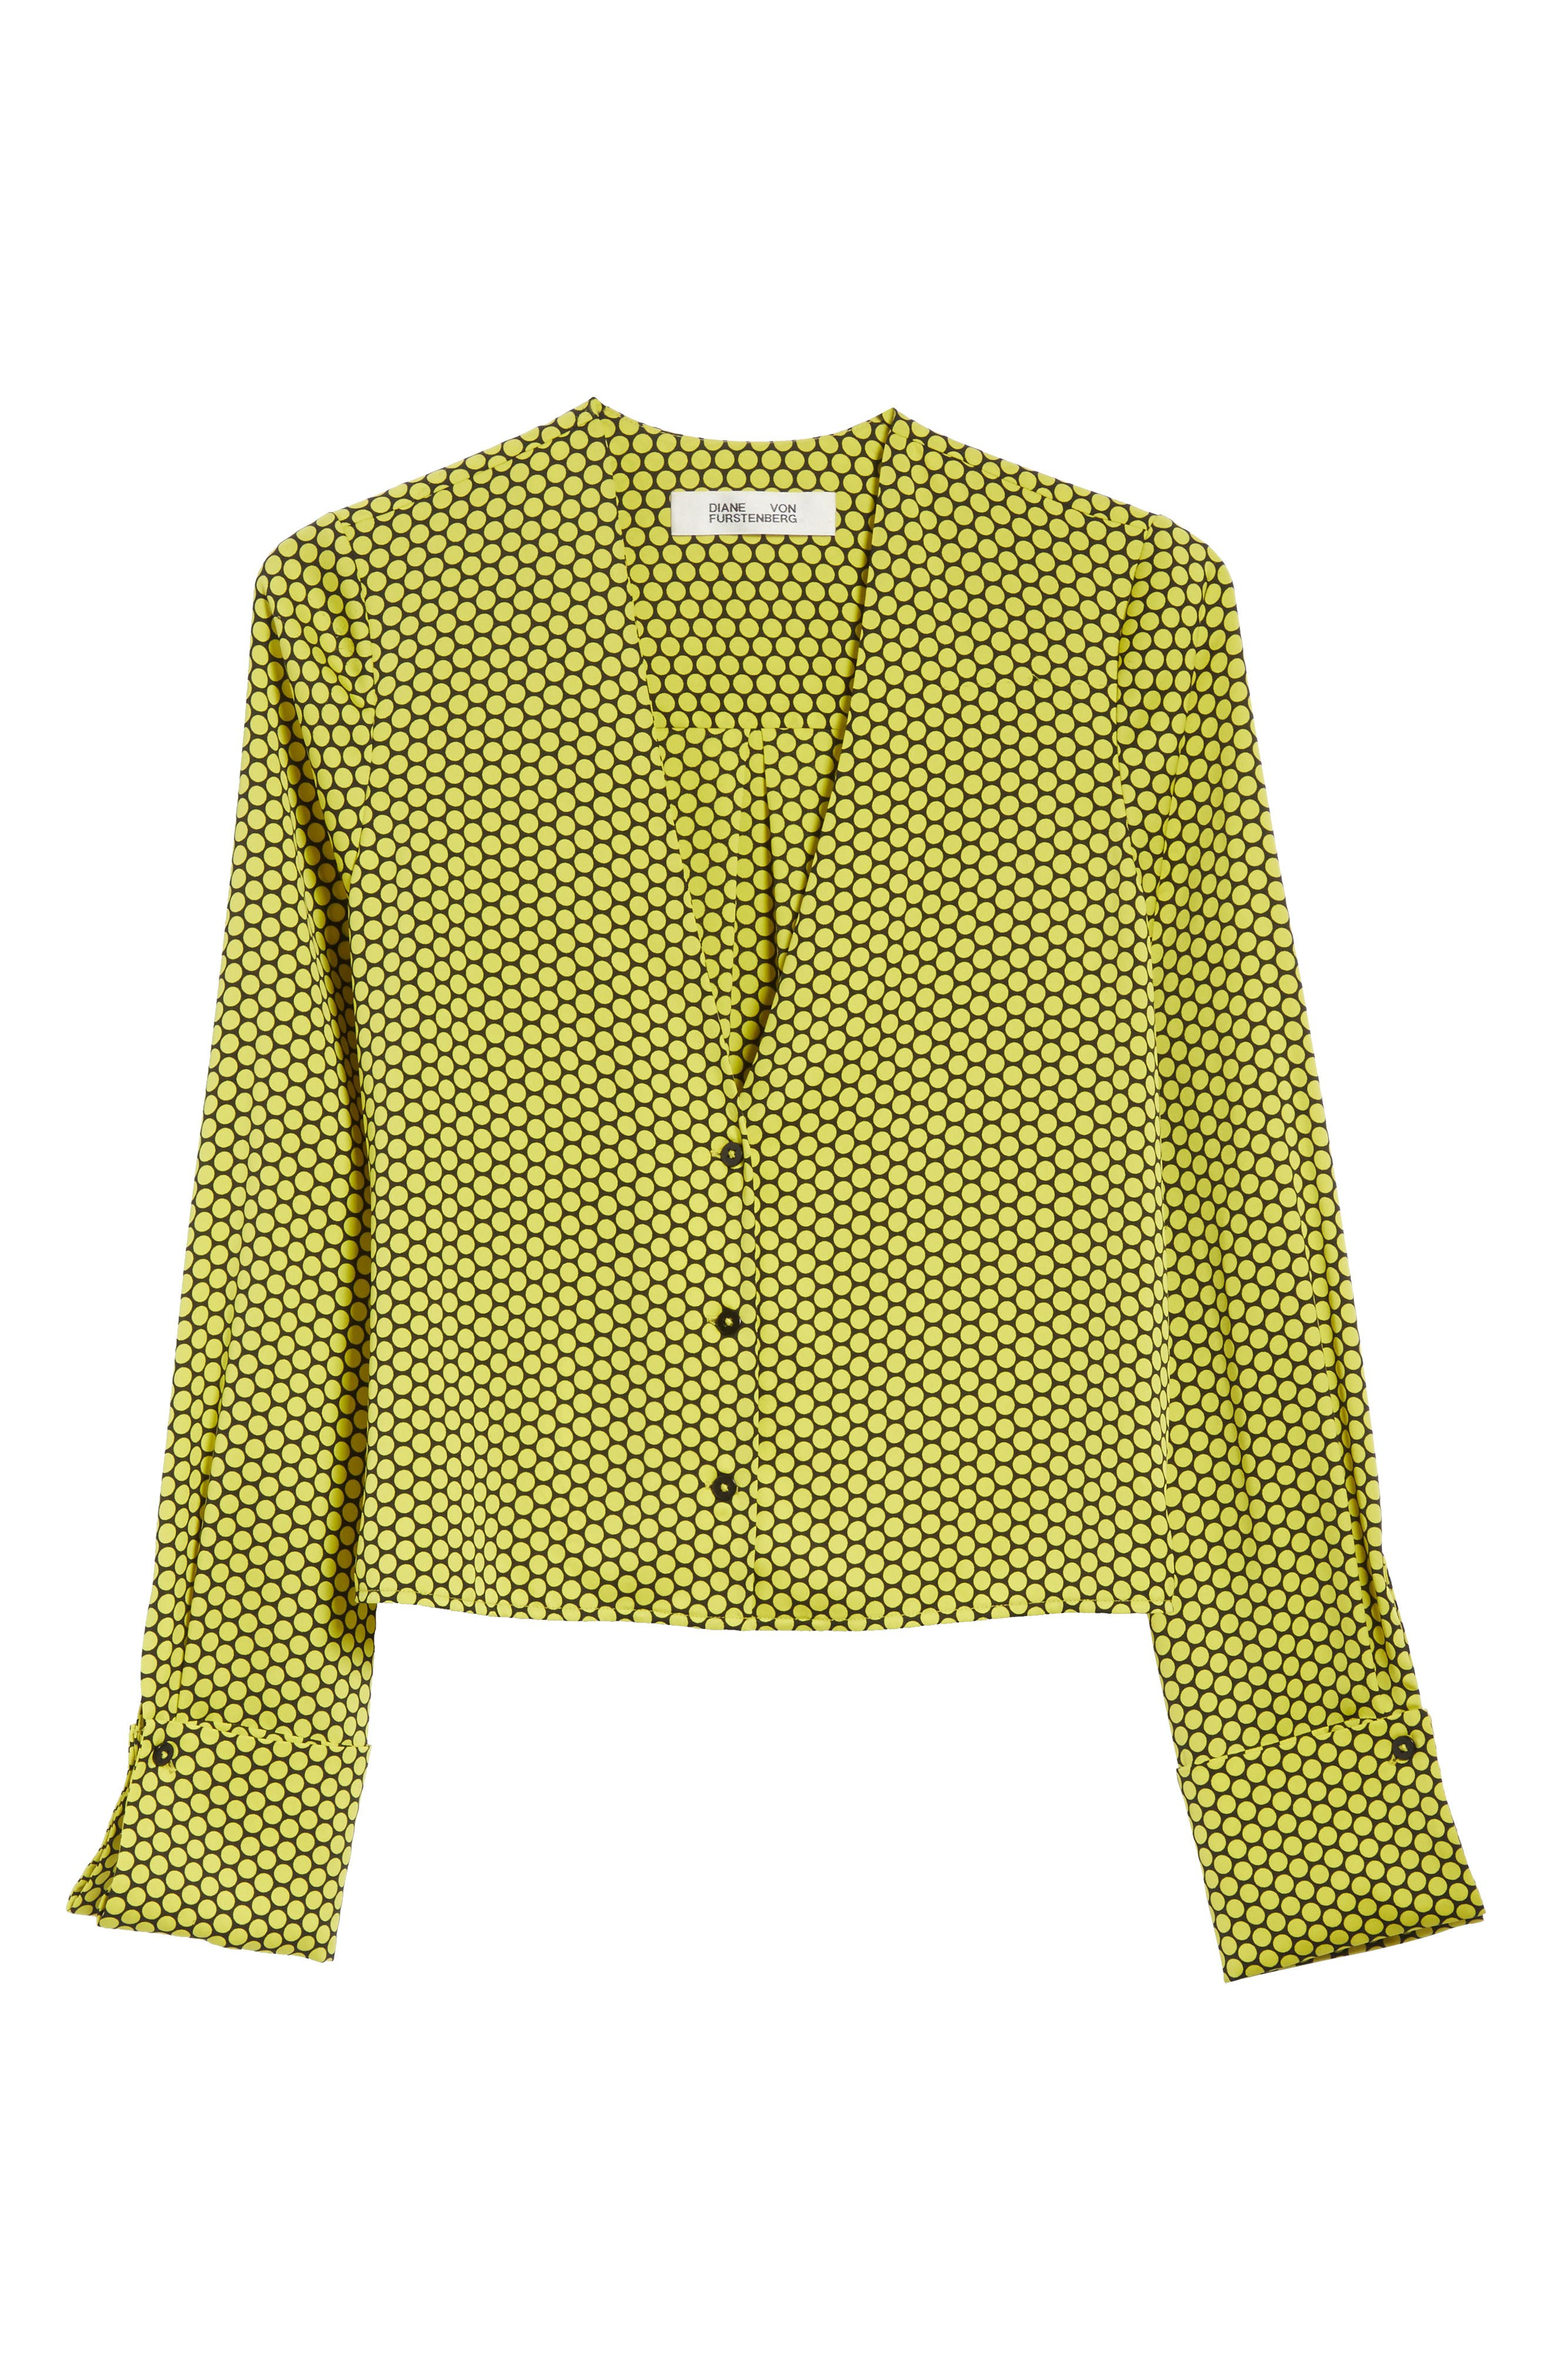 Double Cuff Stretch Silk Blouse,                             Alternate thumbnail 6, color,                             Rowe Dot Citron